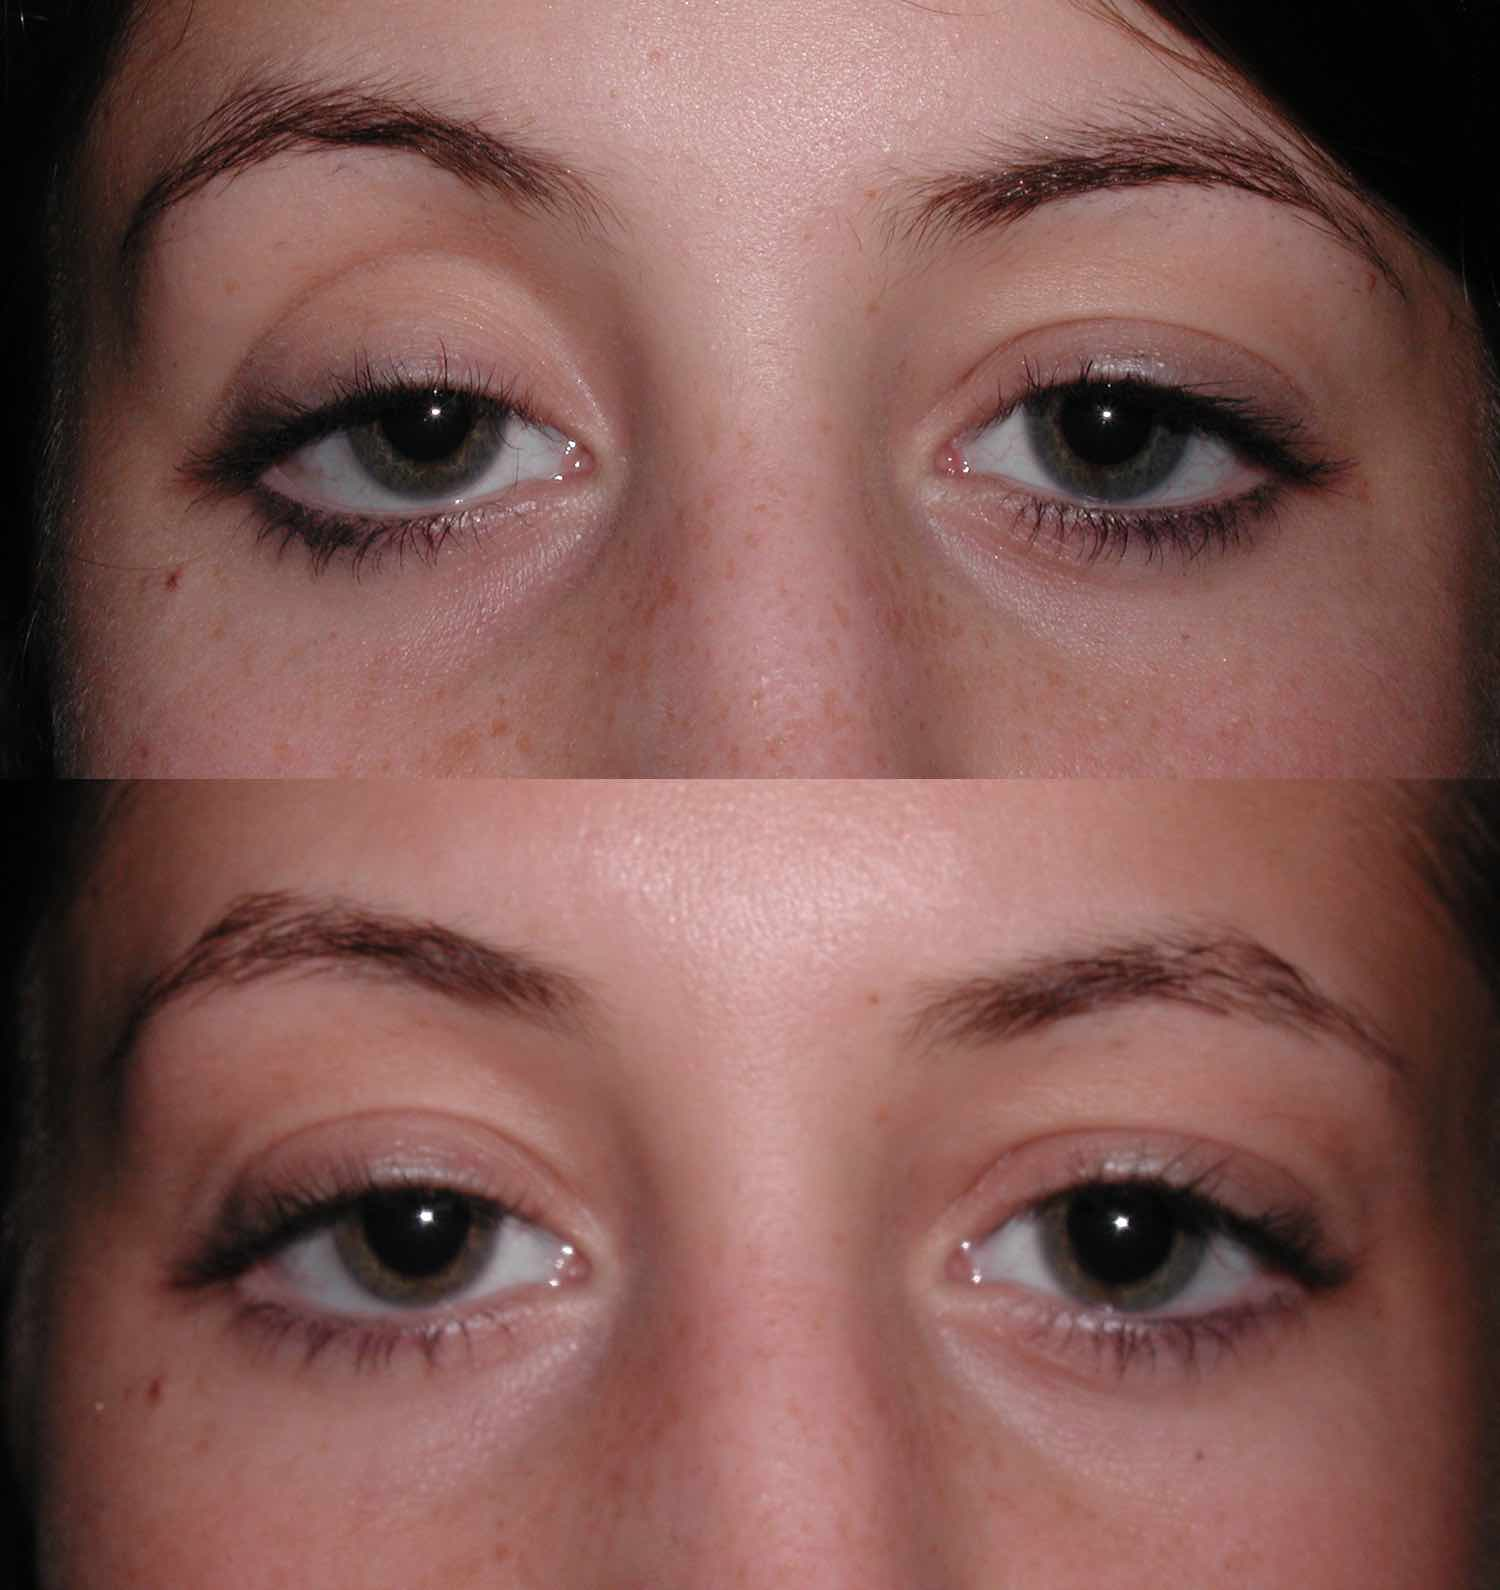 englishsurgeon.com. Photos showing correction of deep upper eyelid sulci with restylane